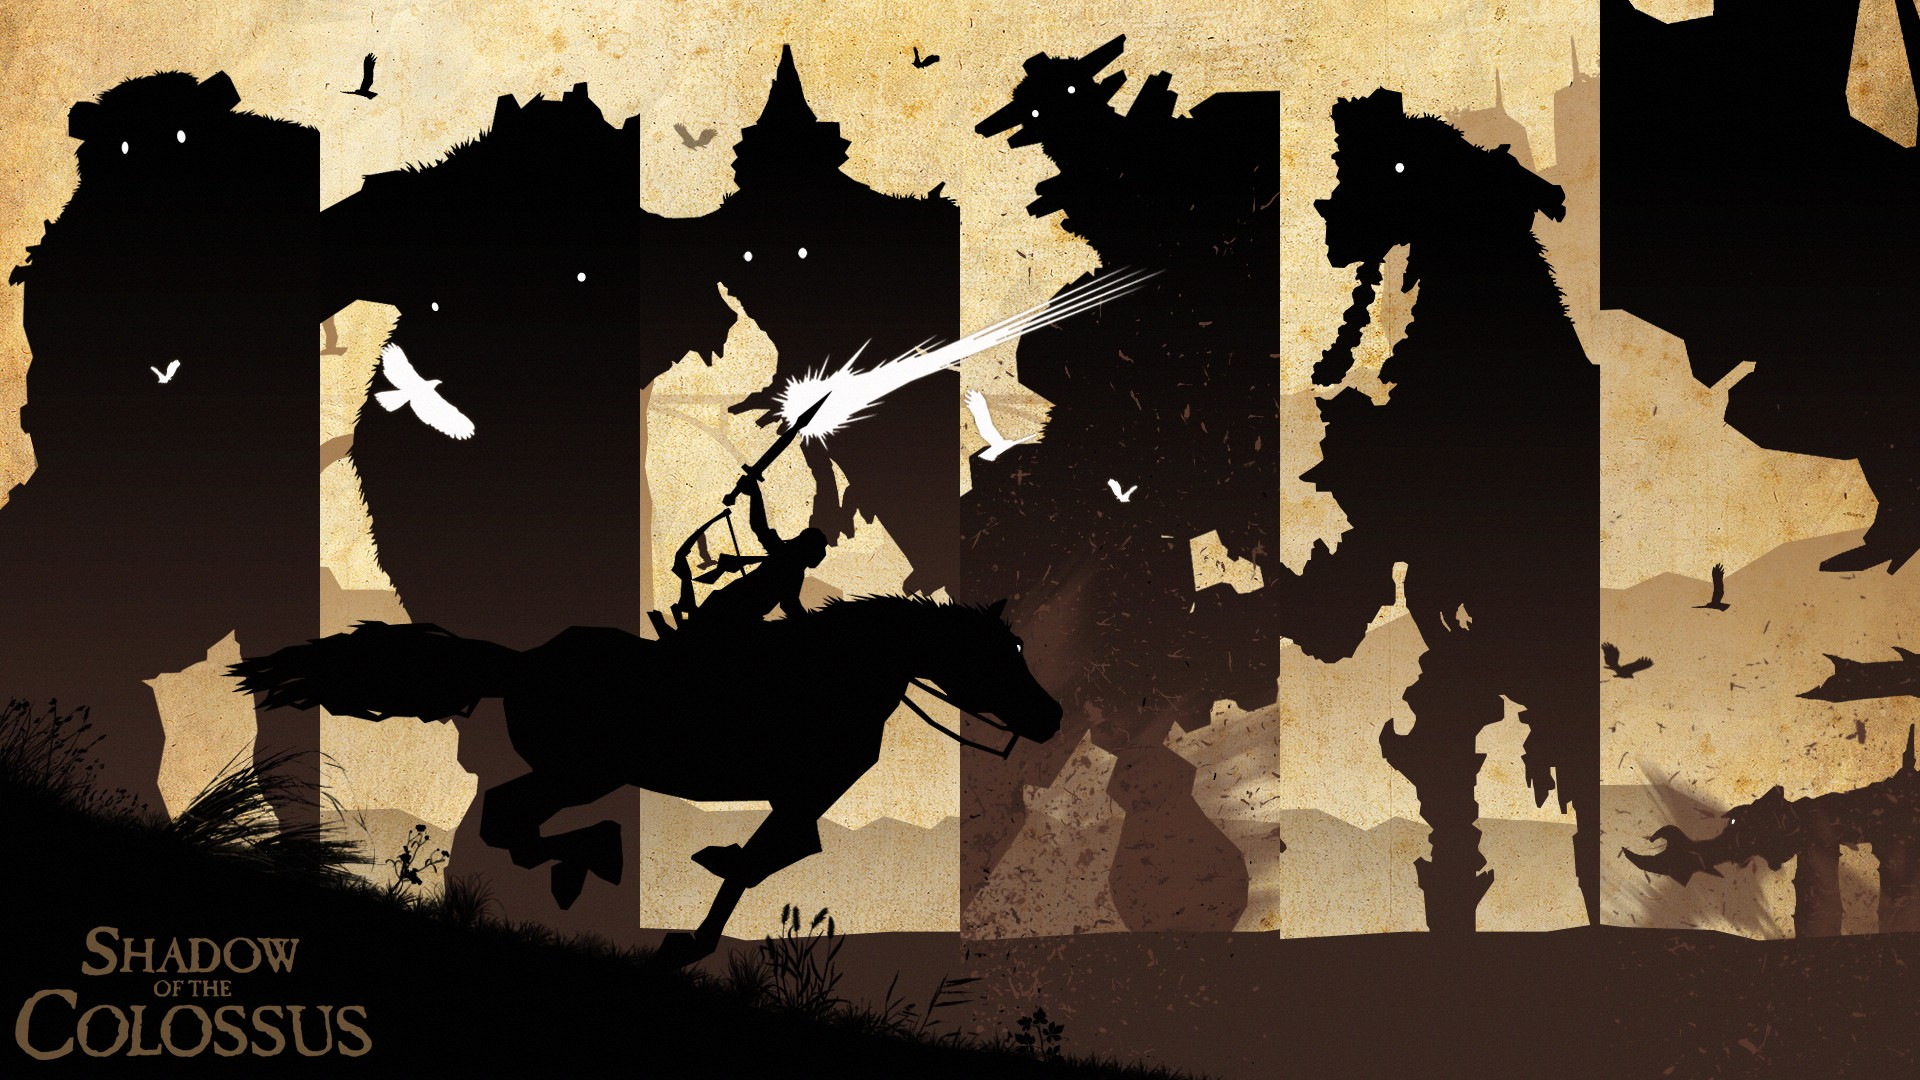 Shadow Of The Colossus Wallpaper Download Free Hd Backgrounds